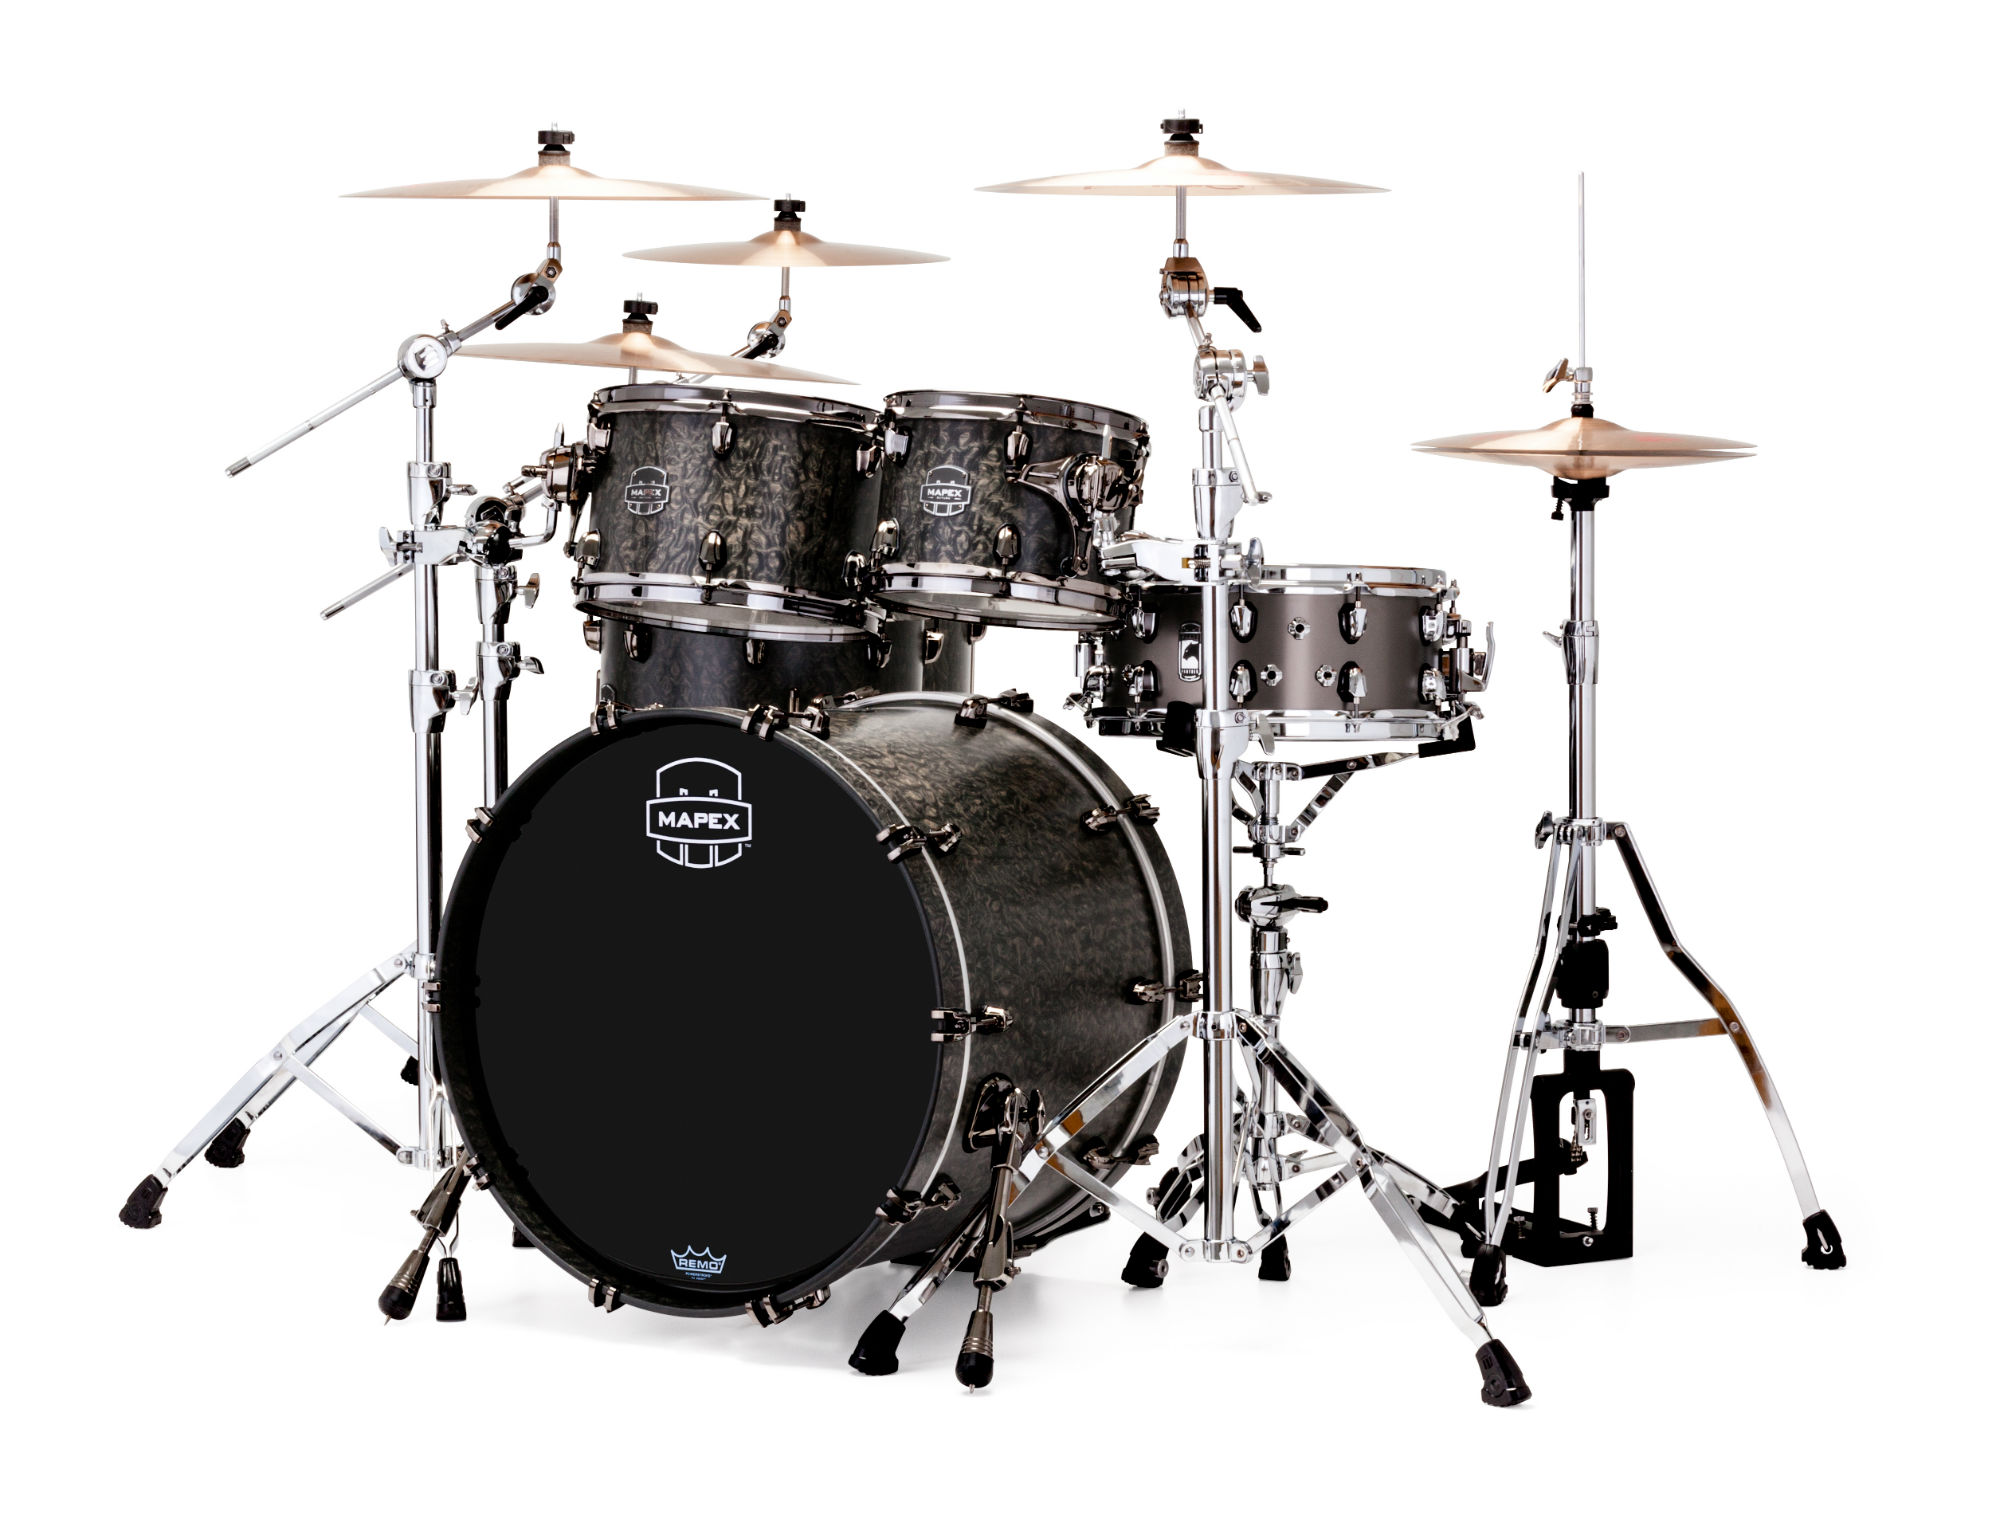 Mapex Saturn V MH Exotic Studioease 5-piece shell pack with SONIClear Edge - SV628XUBKFB - Satin Black Maple Burl